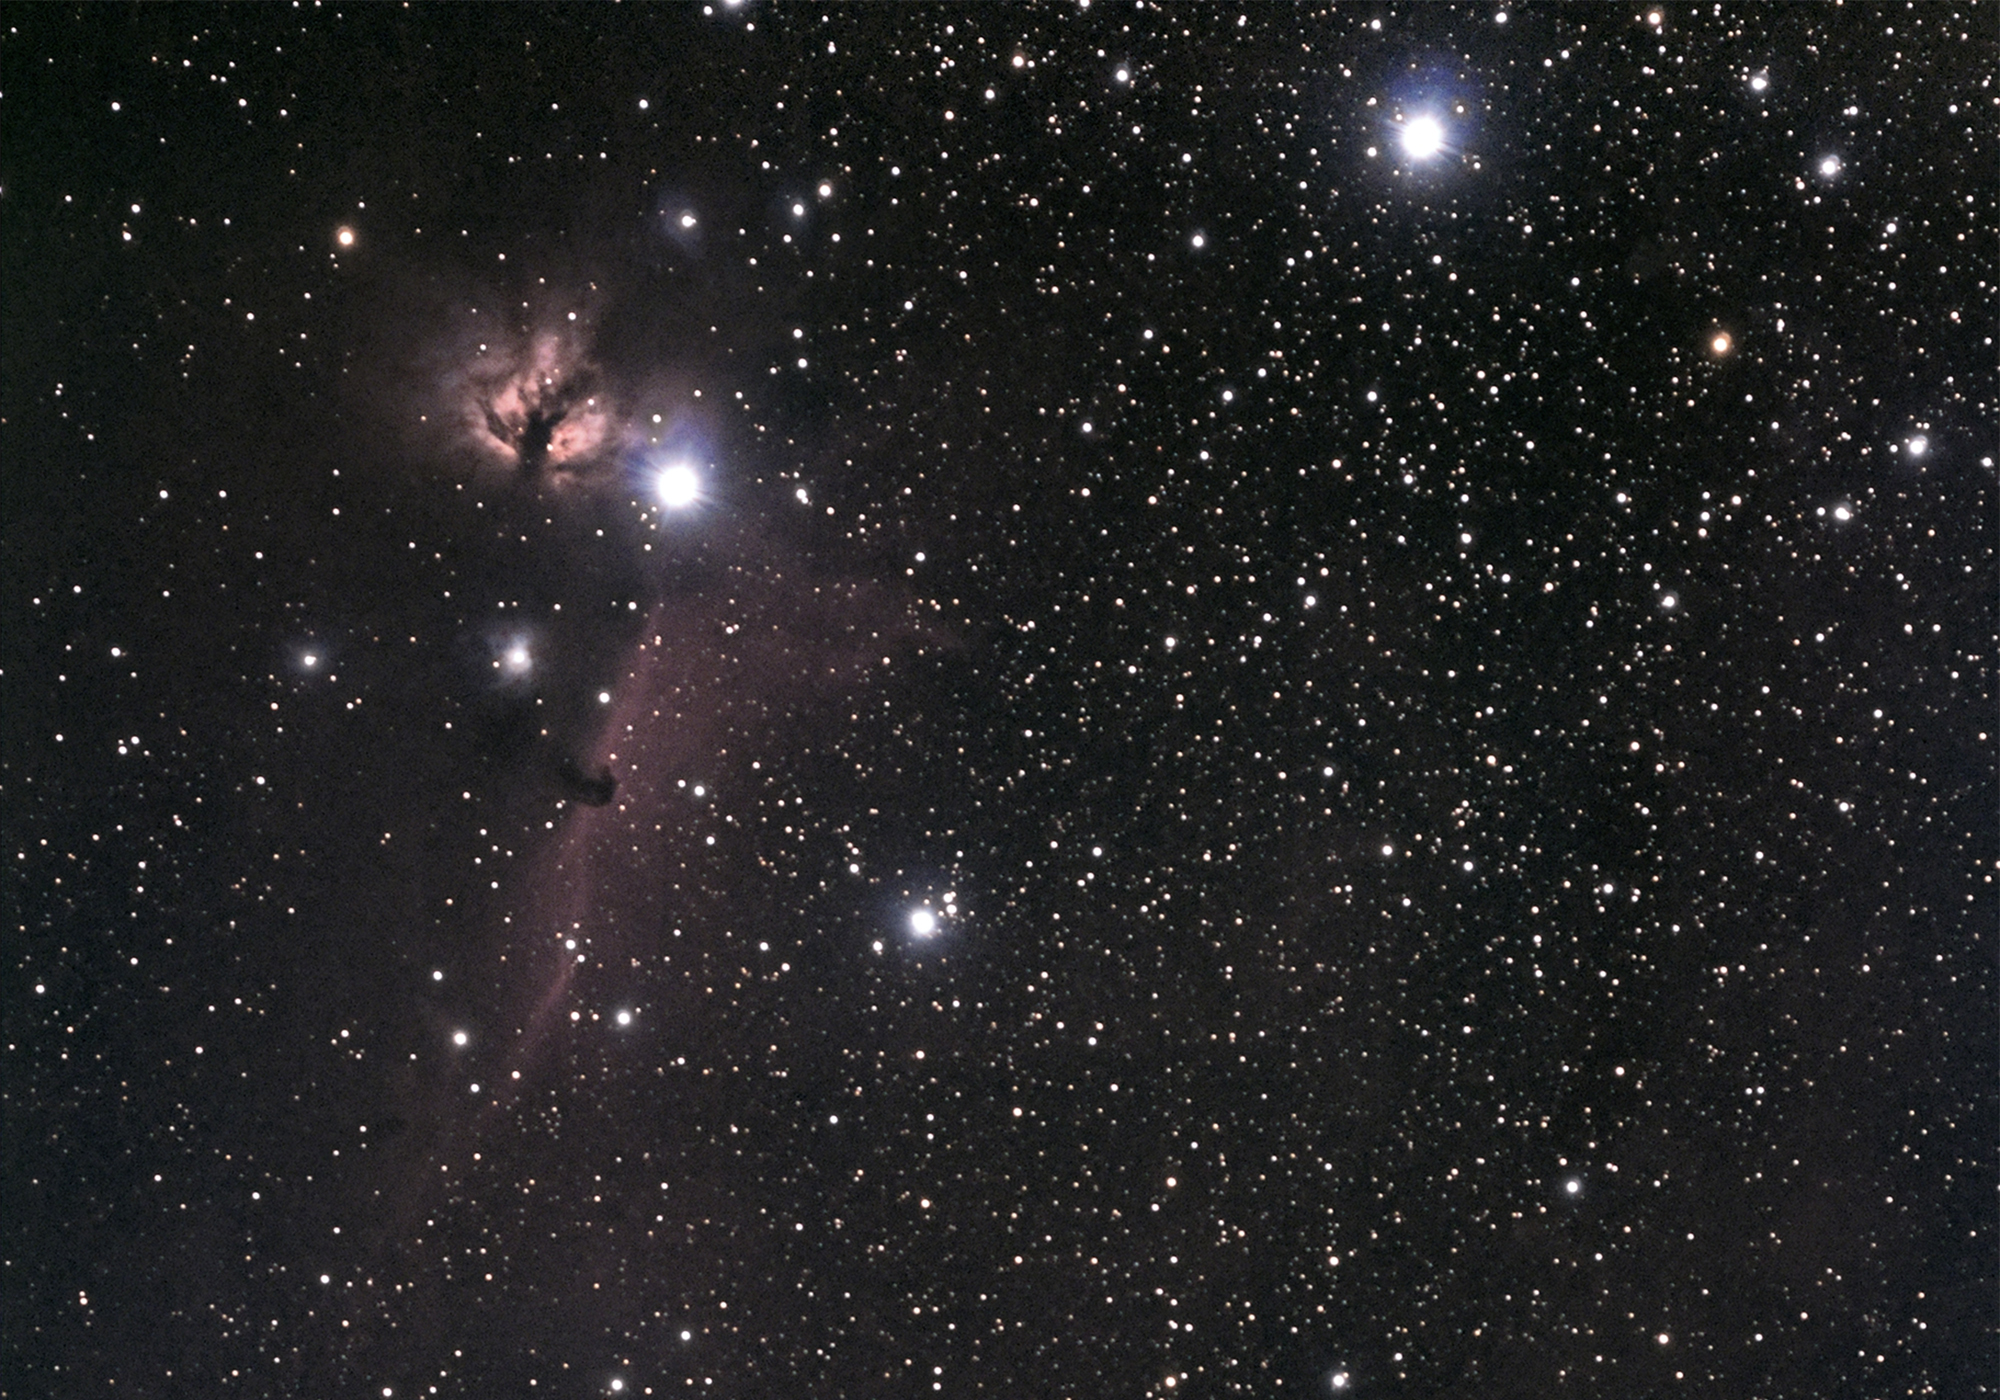 Orion's Belt with Flame & Horsehead Nebula